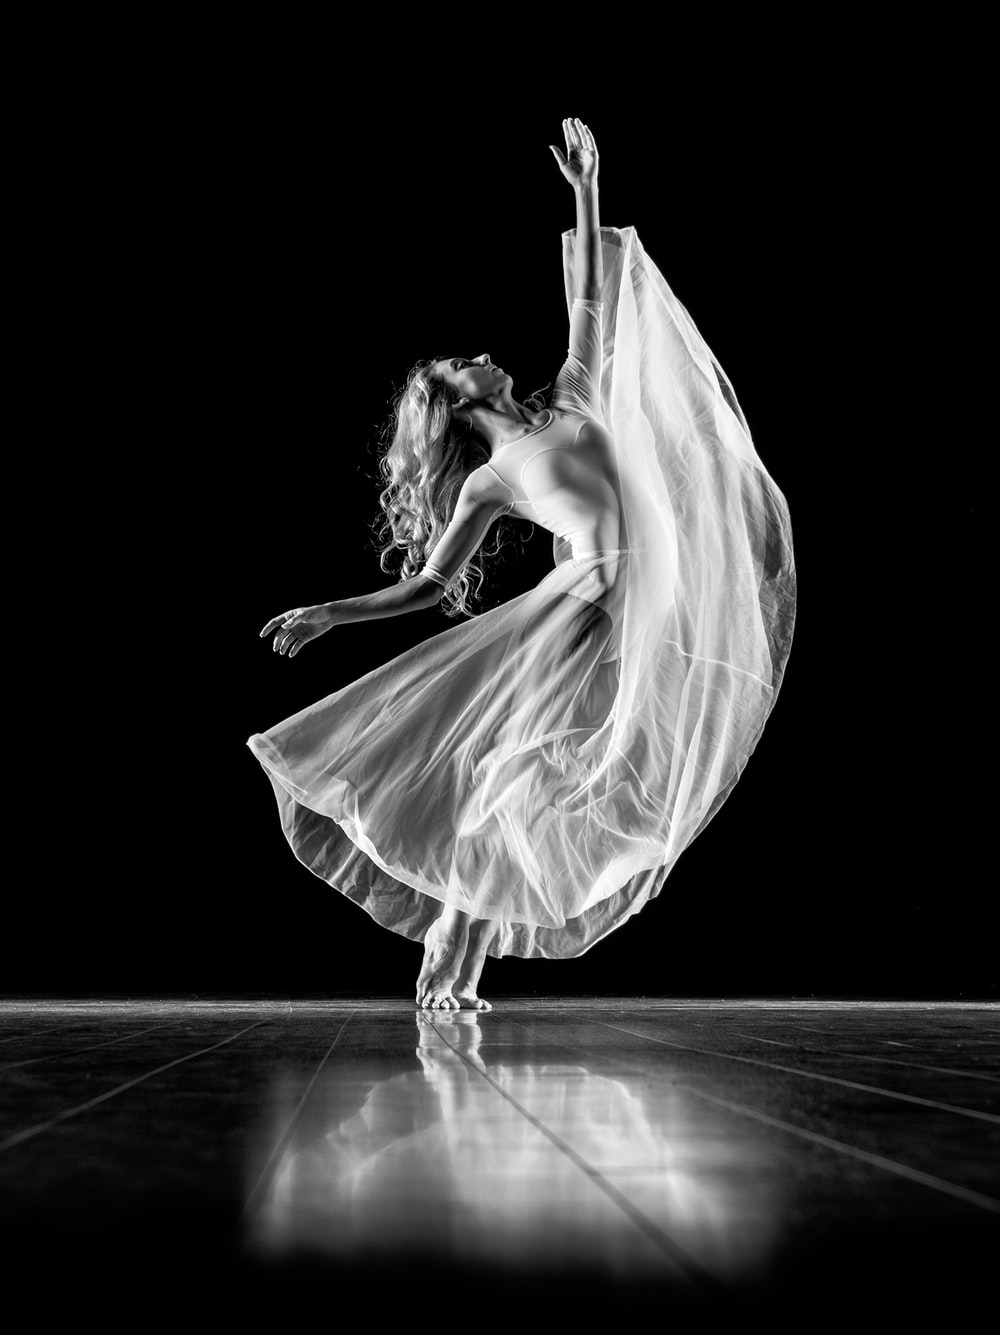 Best 20 dance pictures images hq download free photos on unsplash 380 malvernweather Choice Image